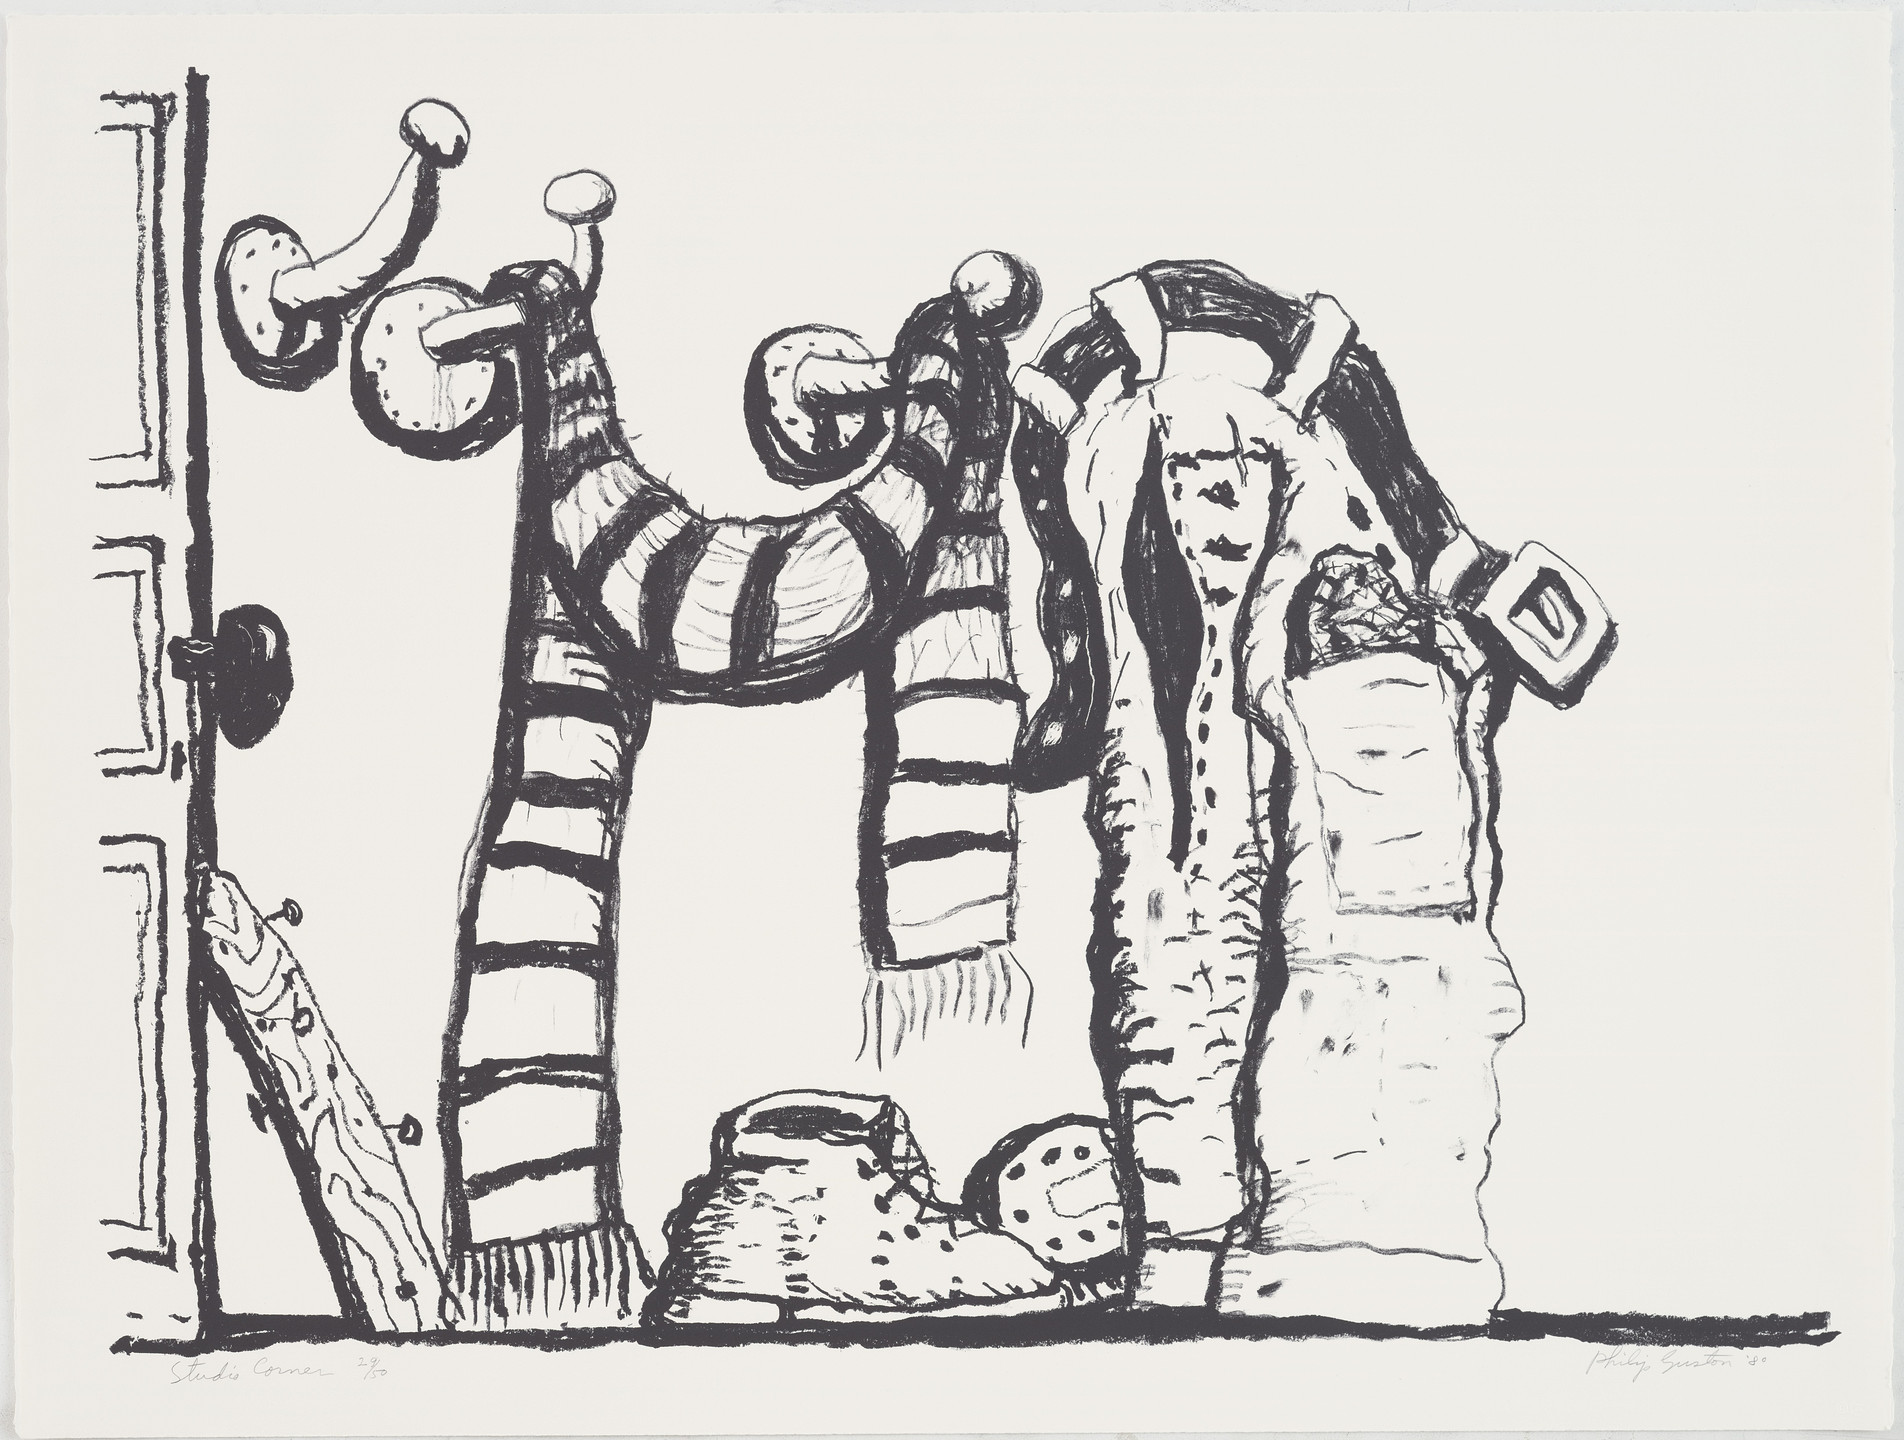 Philip Guston. Studio Corner. 1980, published 1981